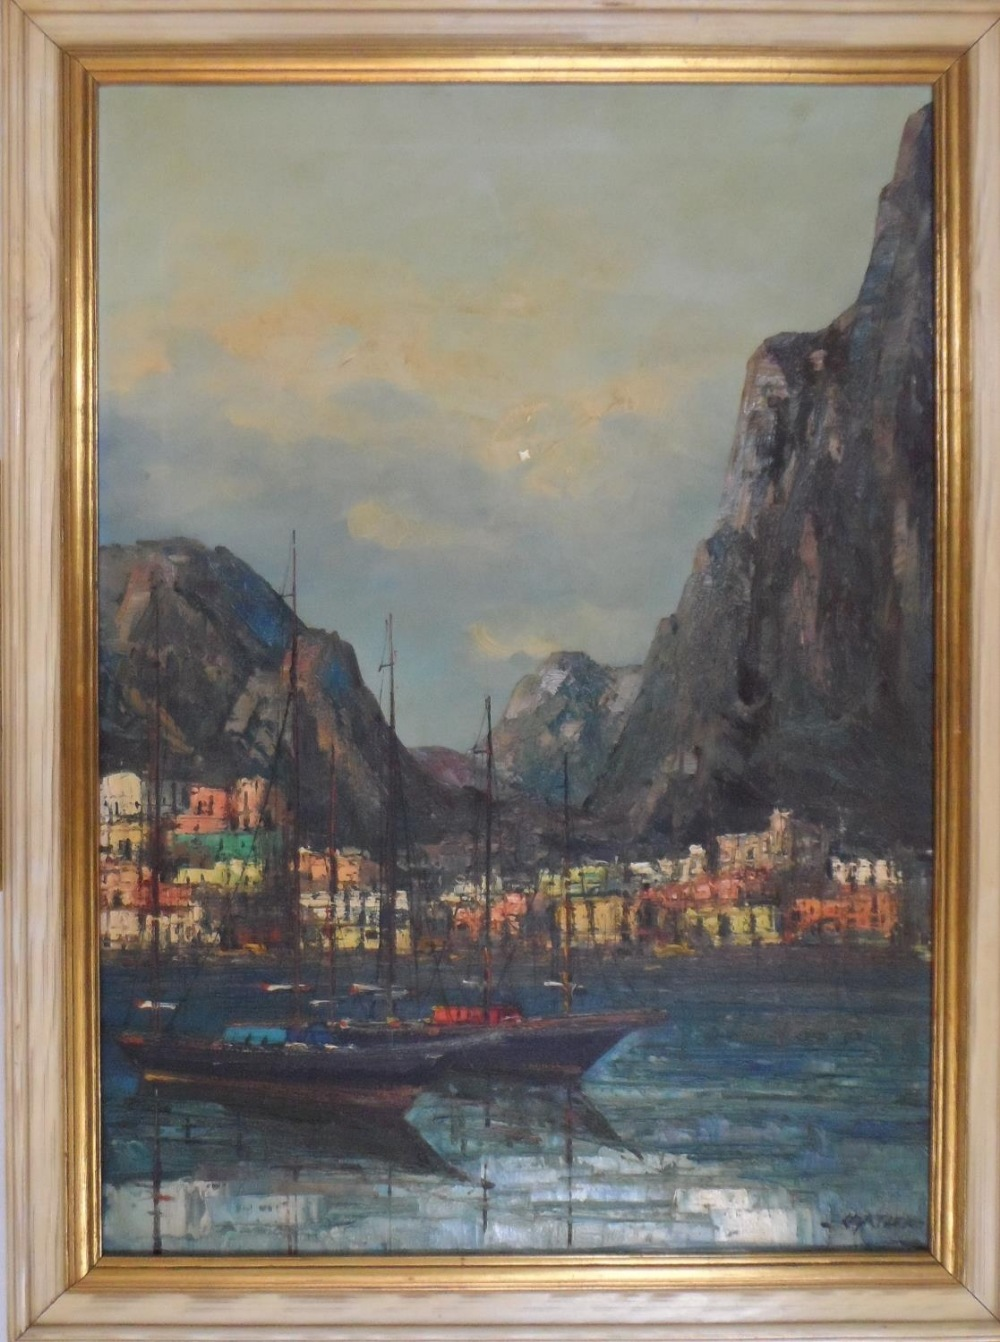 """Large impressionist, 1960s/70s oil on canvas, """"Boats of Mediterranean coast"""" signed CARTIER, framed, - Image 2 of 5"""